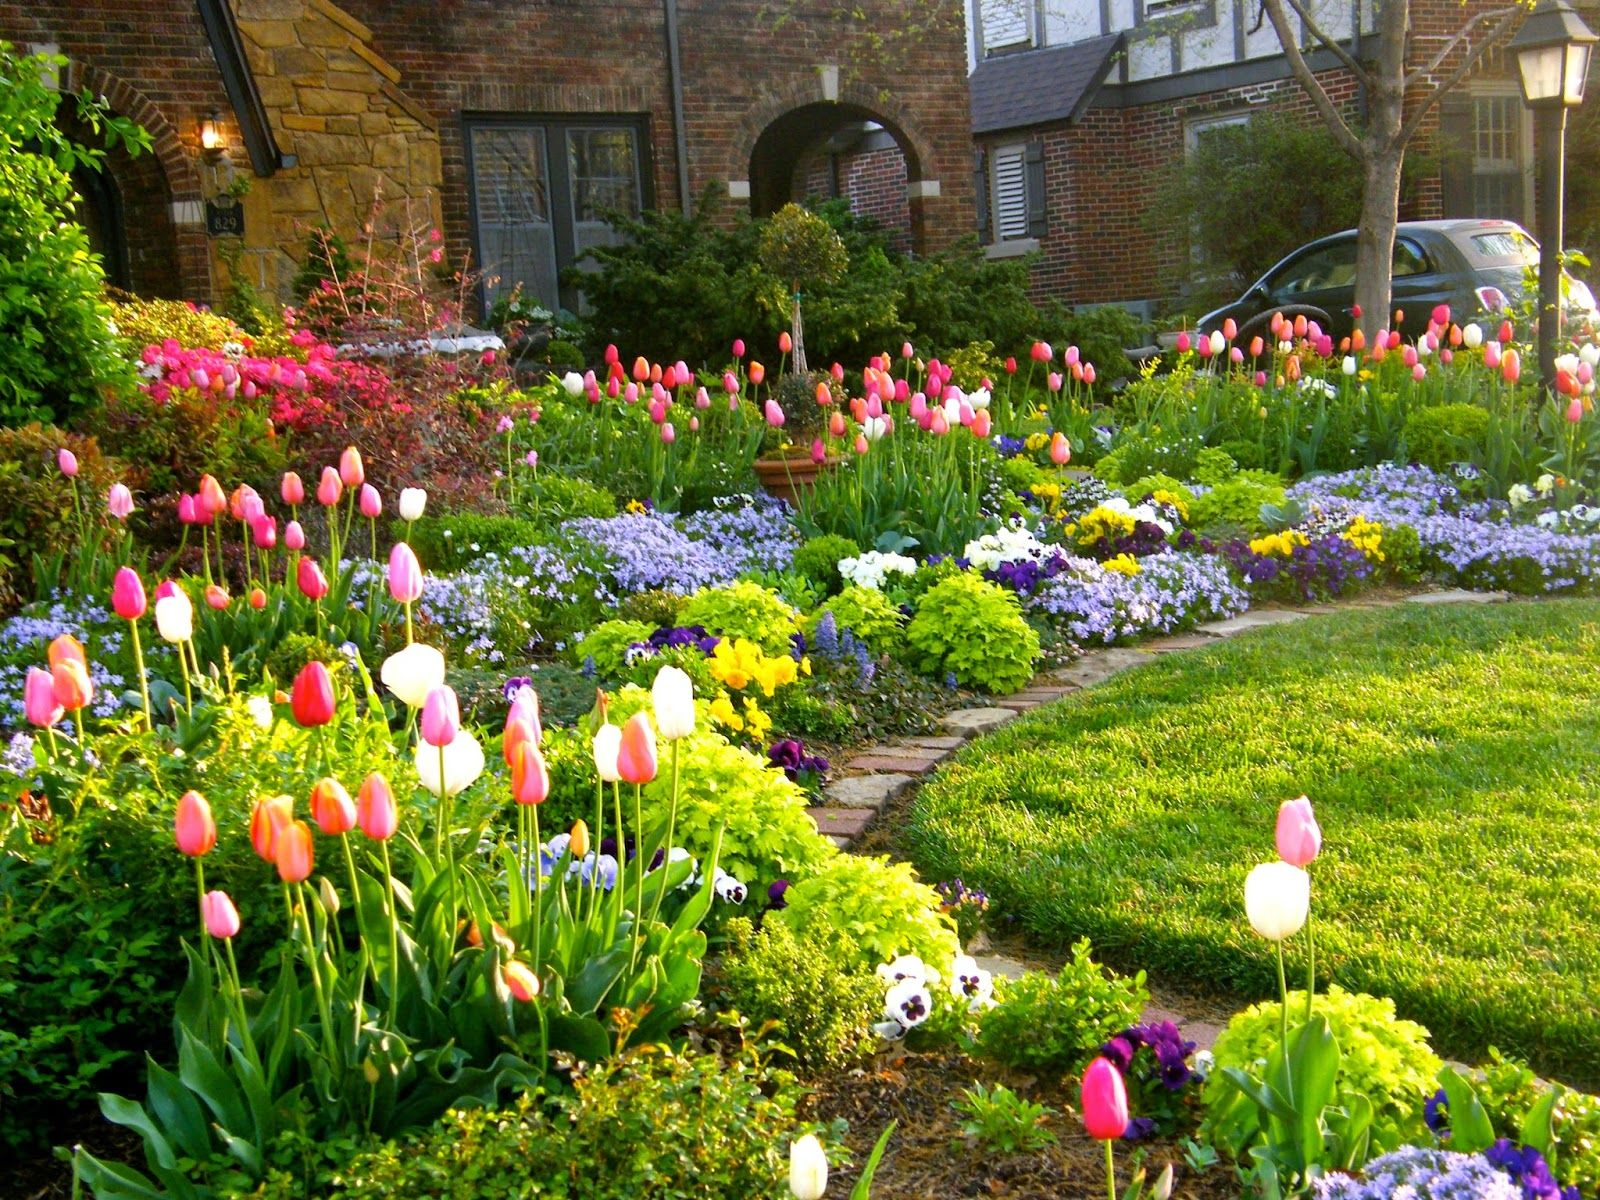 Tulip season front yard garden curb appeal flowers for Best flowers for front yard landscaping